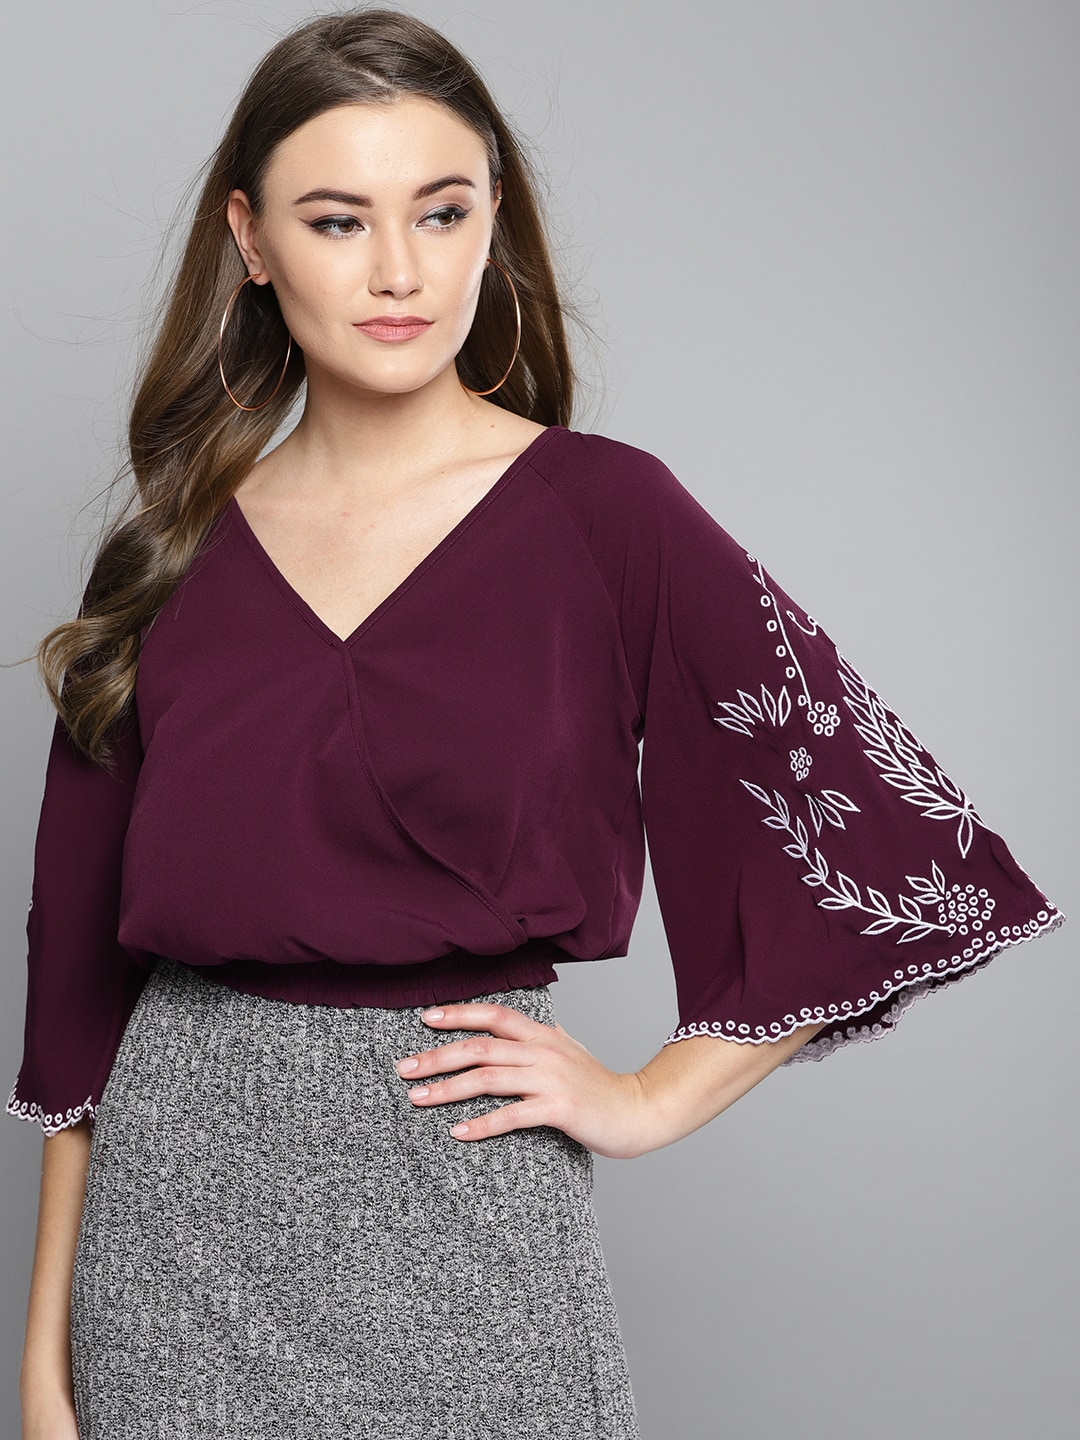 a19bbb00a7b Crop Tops - Buy Midriff Crop Tops Online for Women in India